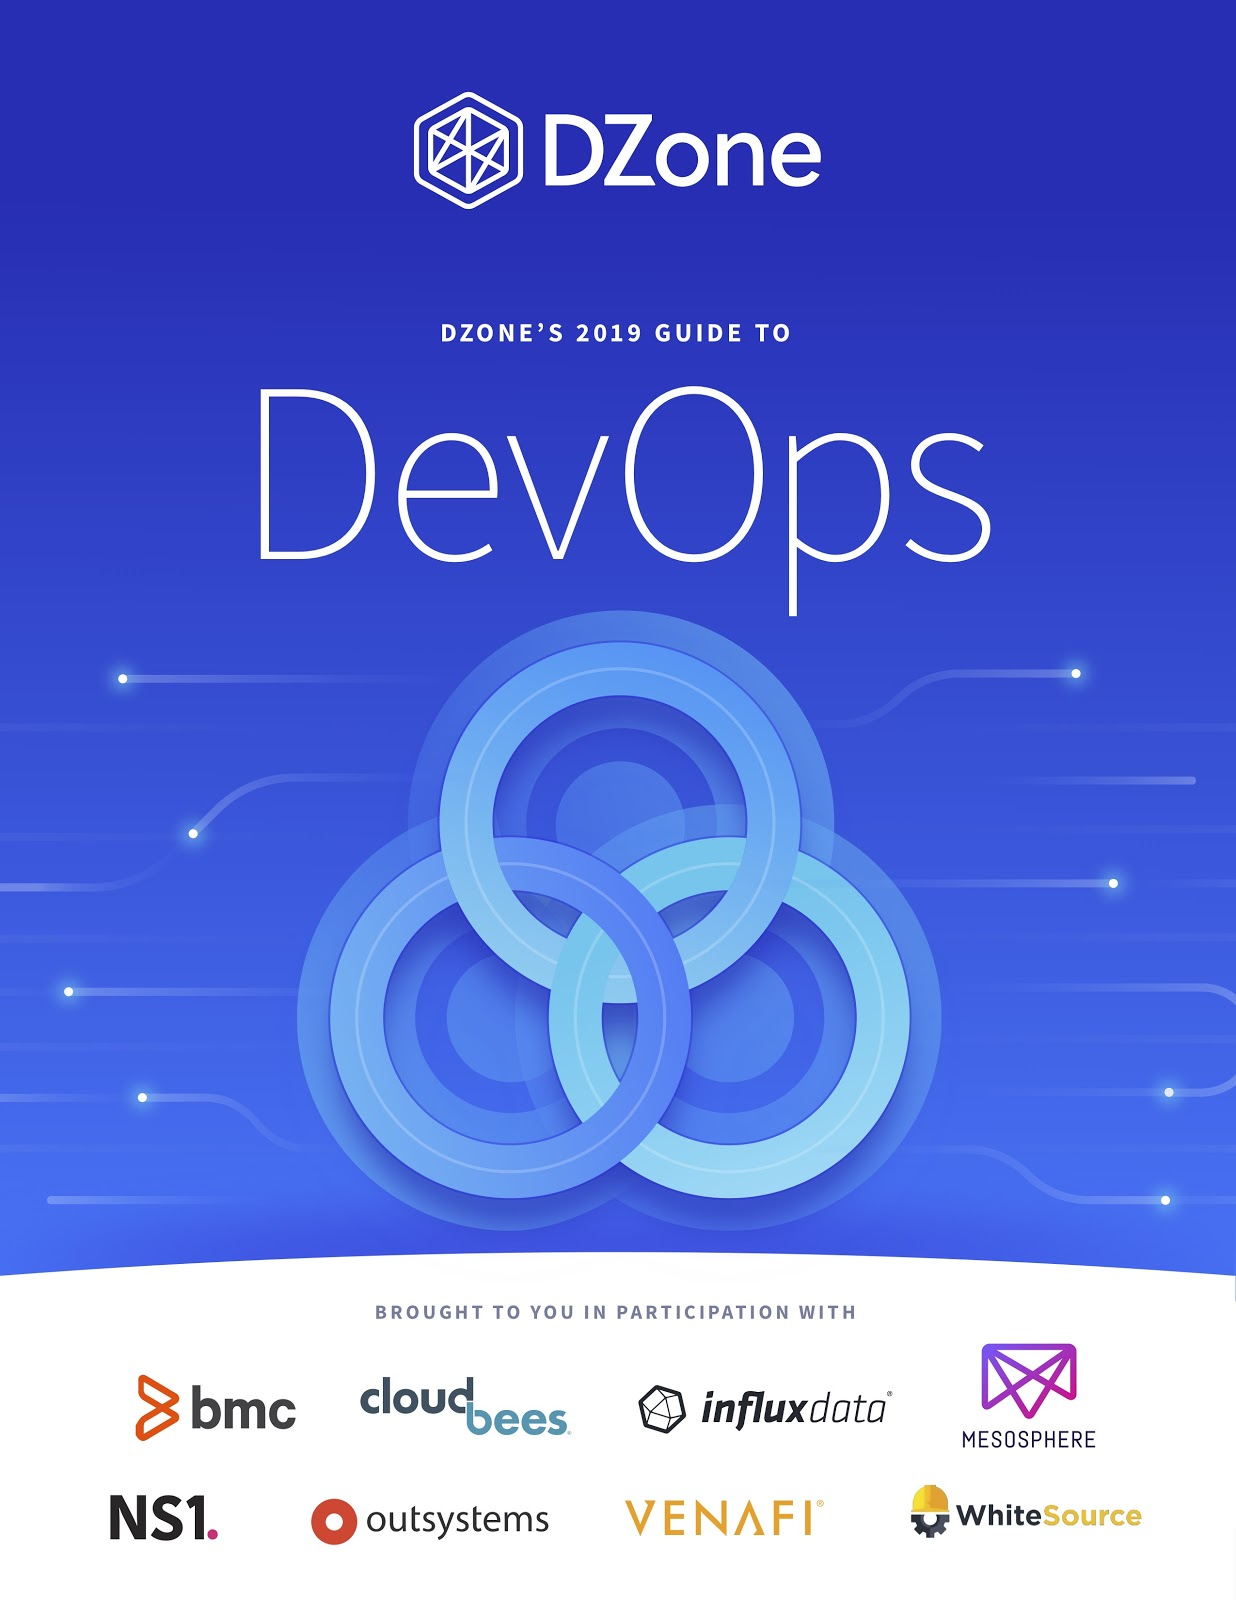 dzone researchguide devops2019 Cover